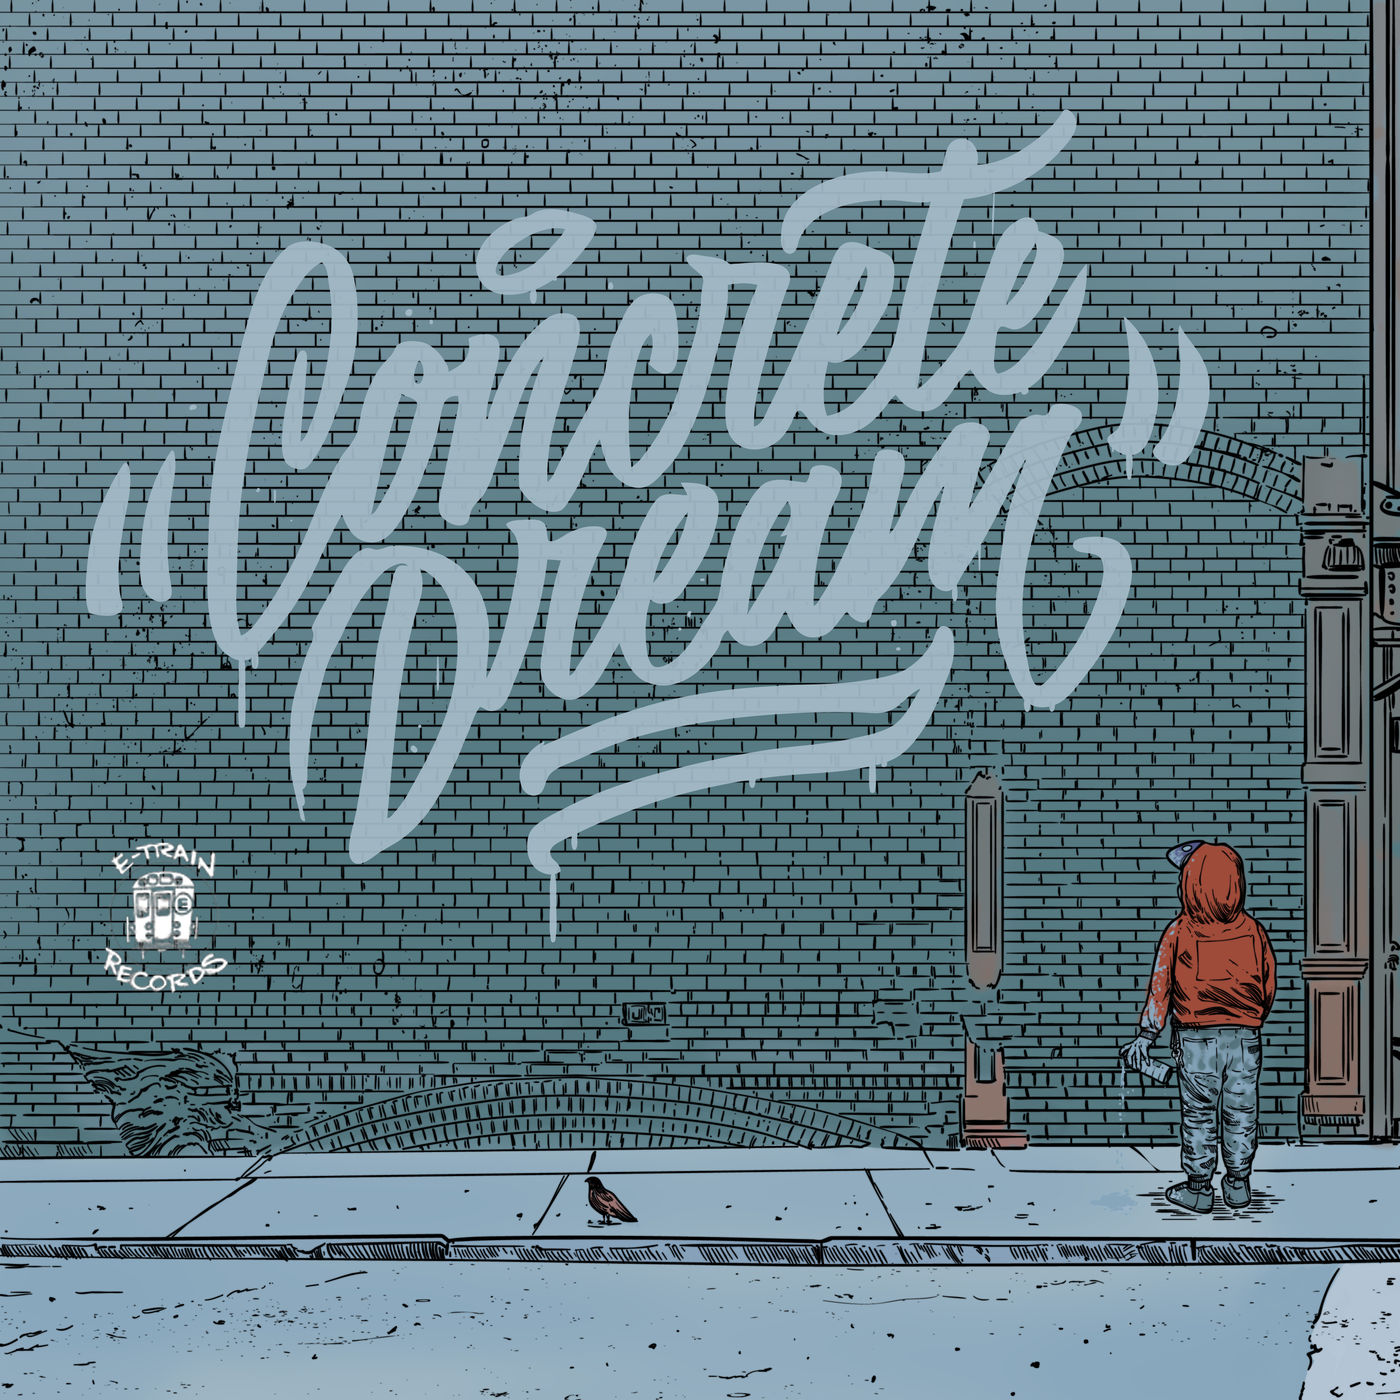 Concrete Dream - Concrete Dream